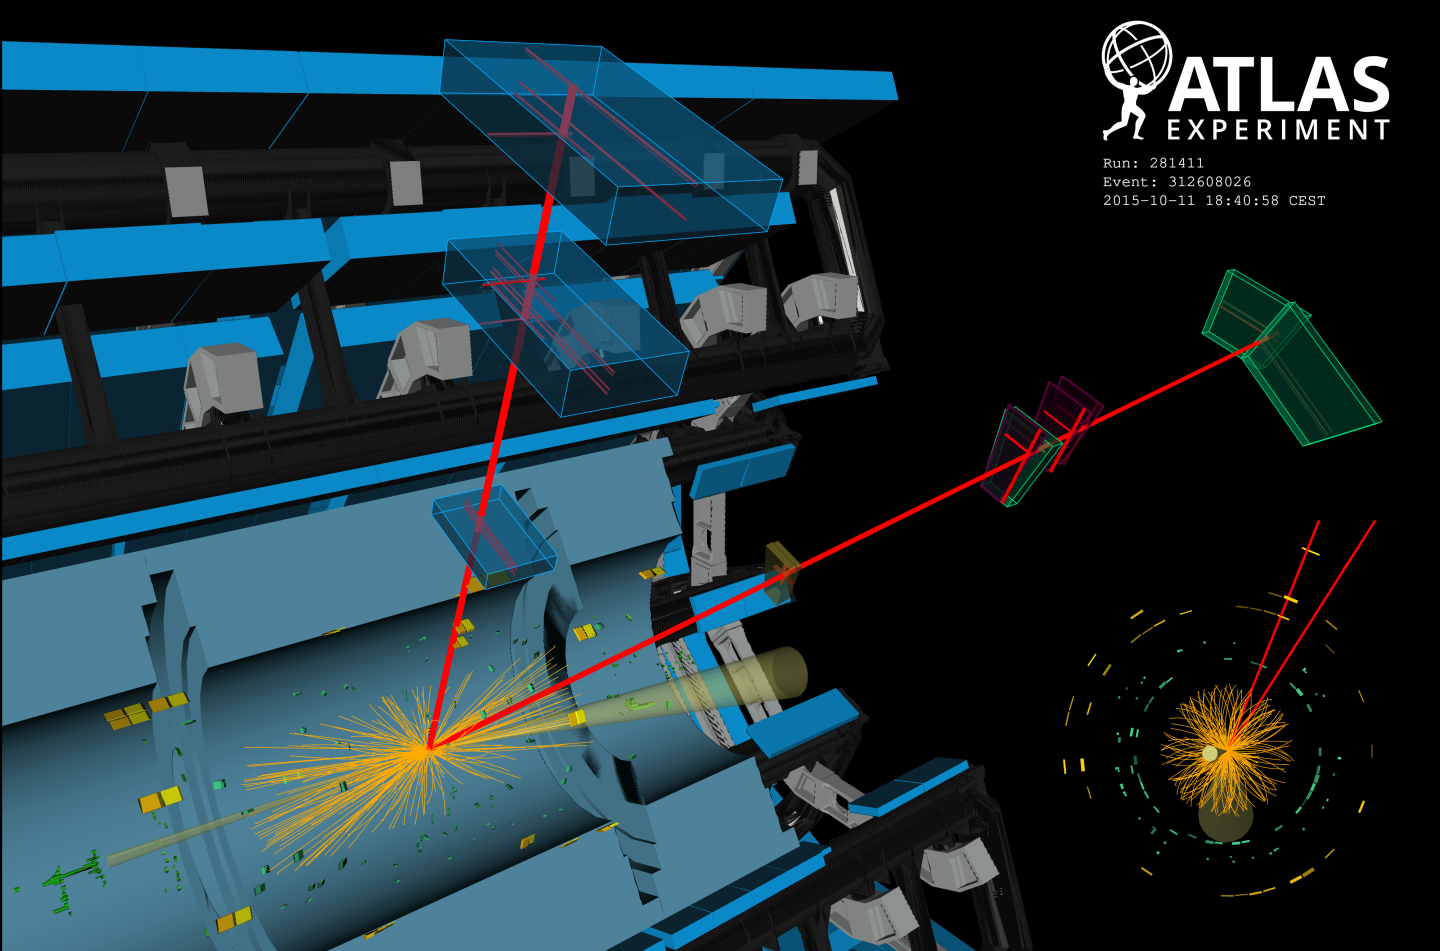 Berkeley Lab Scientists Contribute to New Exploration of Higgs Boson Interactions